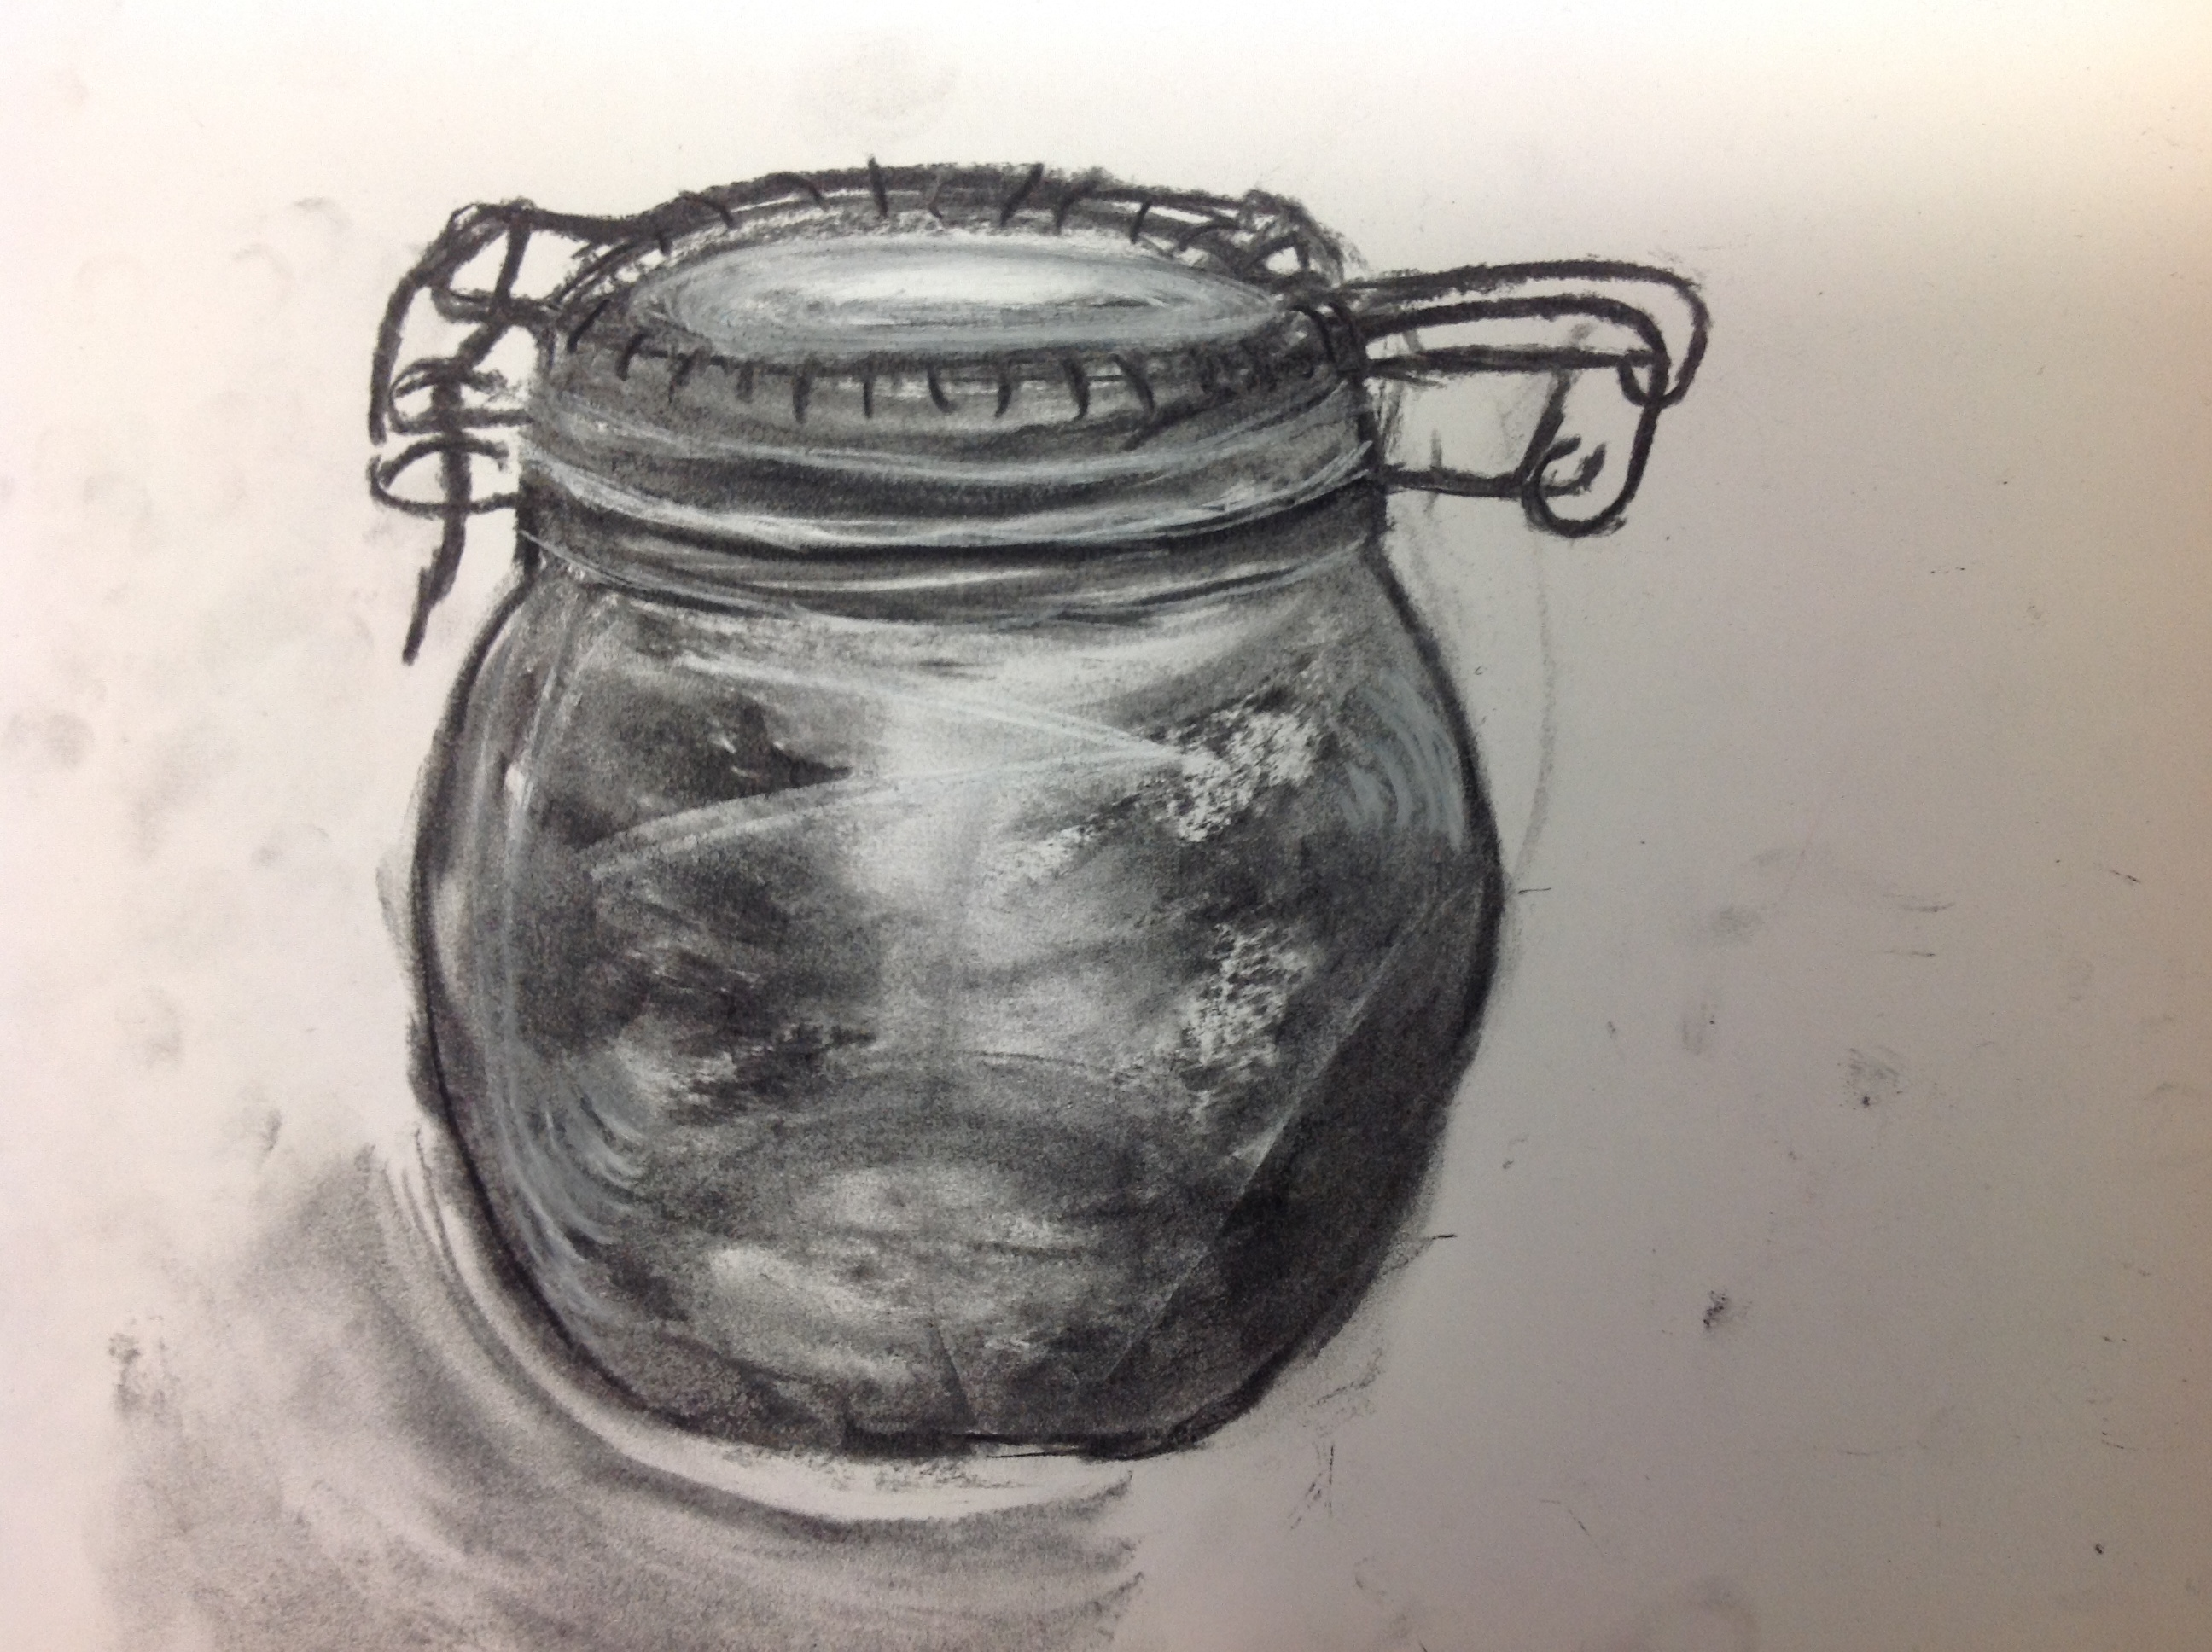 Observational Drawing Experimenting With Mediums